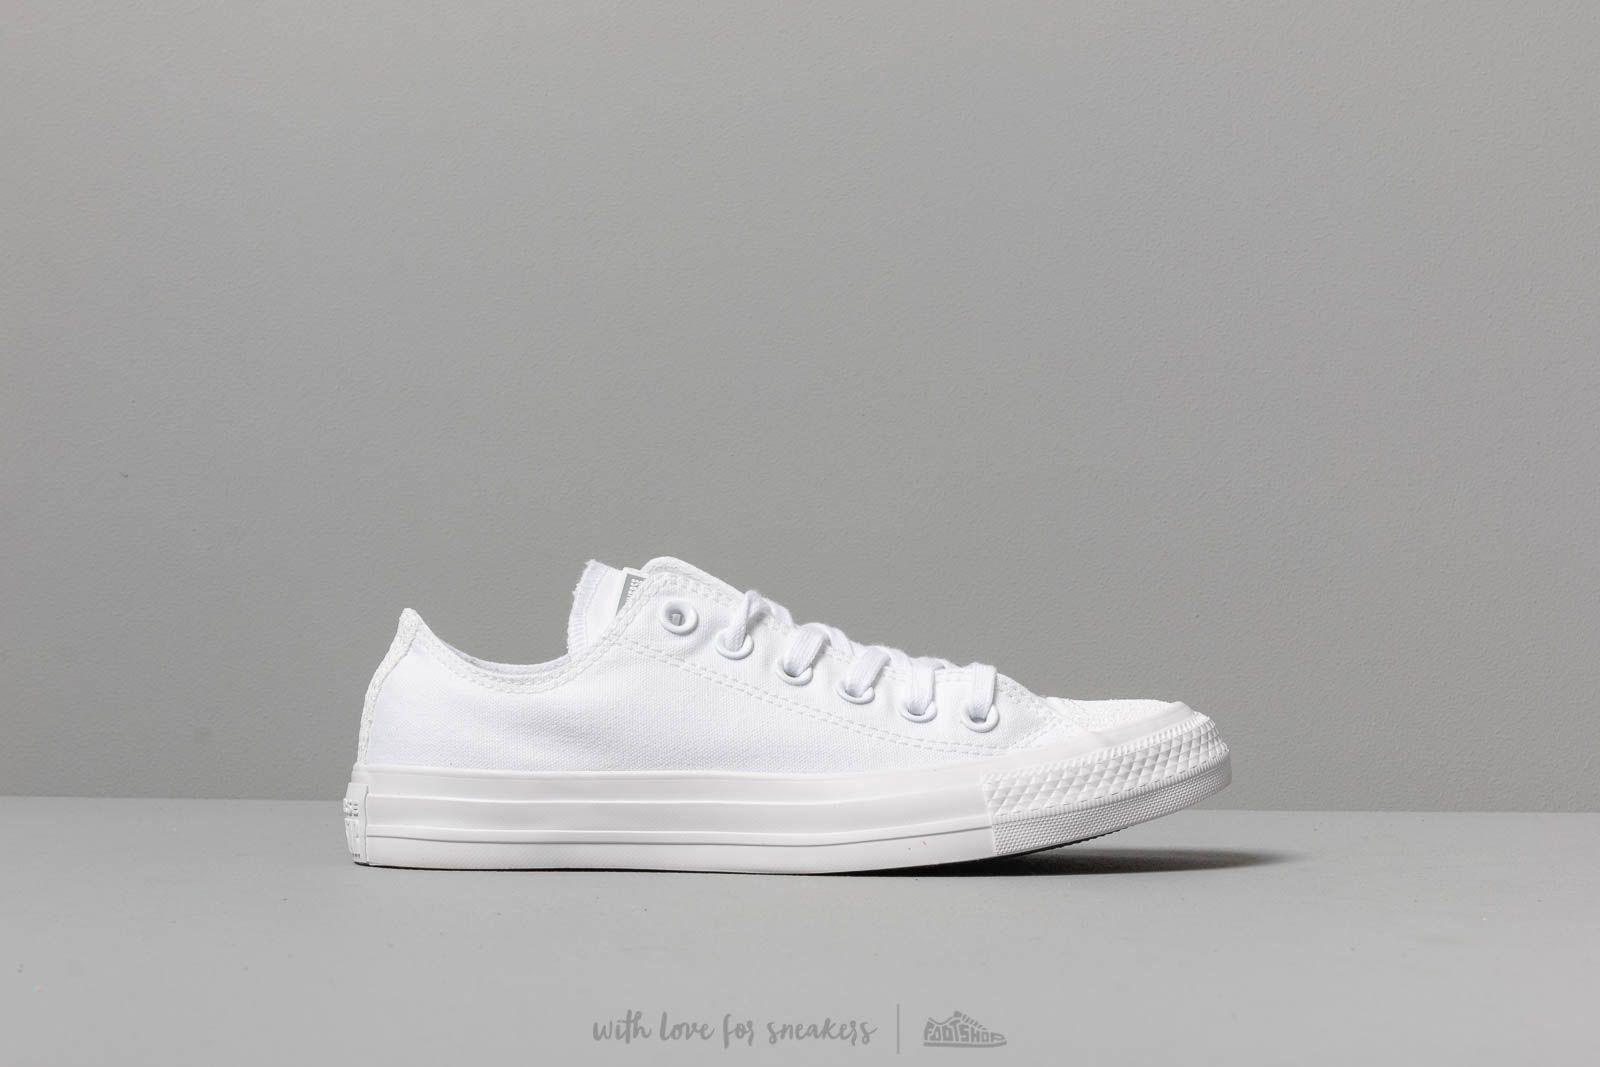 Converse All Star White Taylor Chuck SilverFootshop bf7gyvYI6